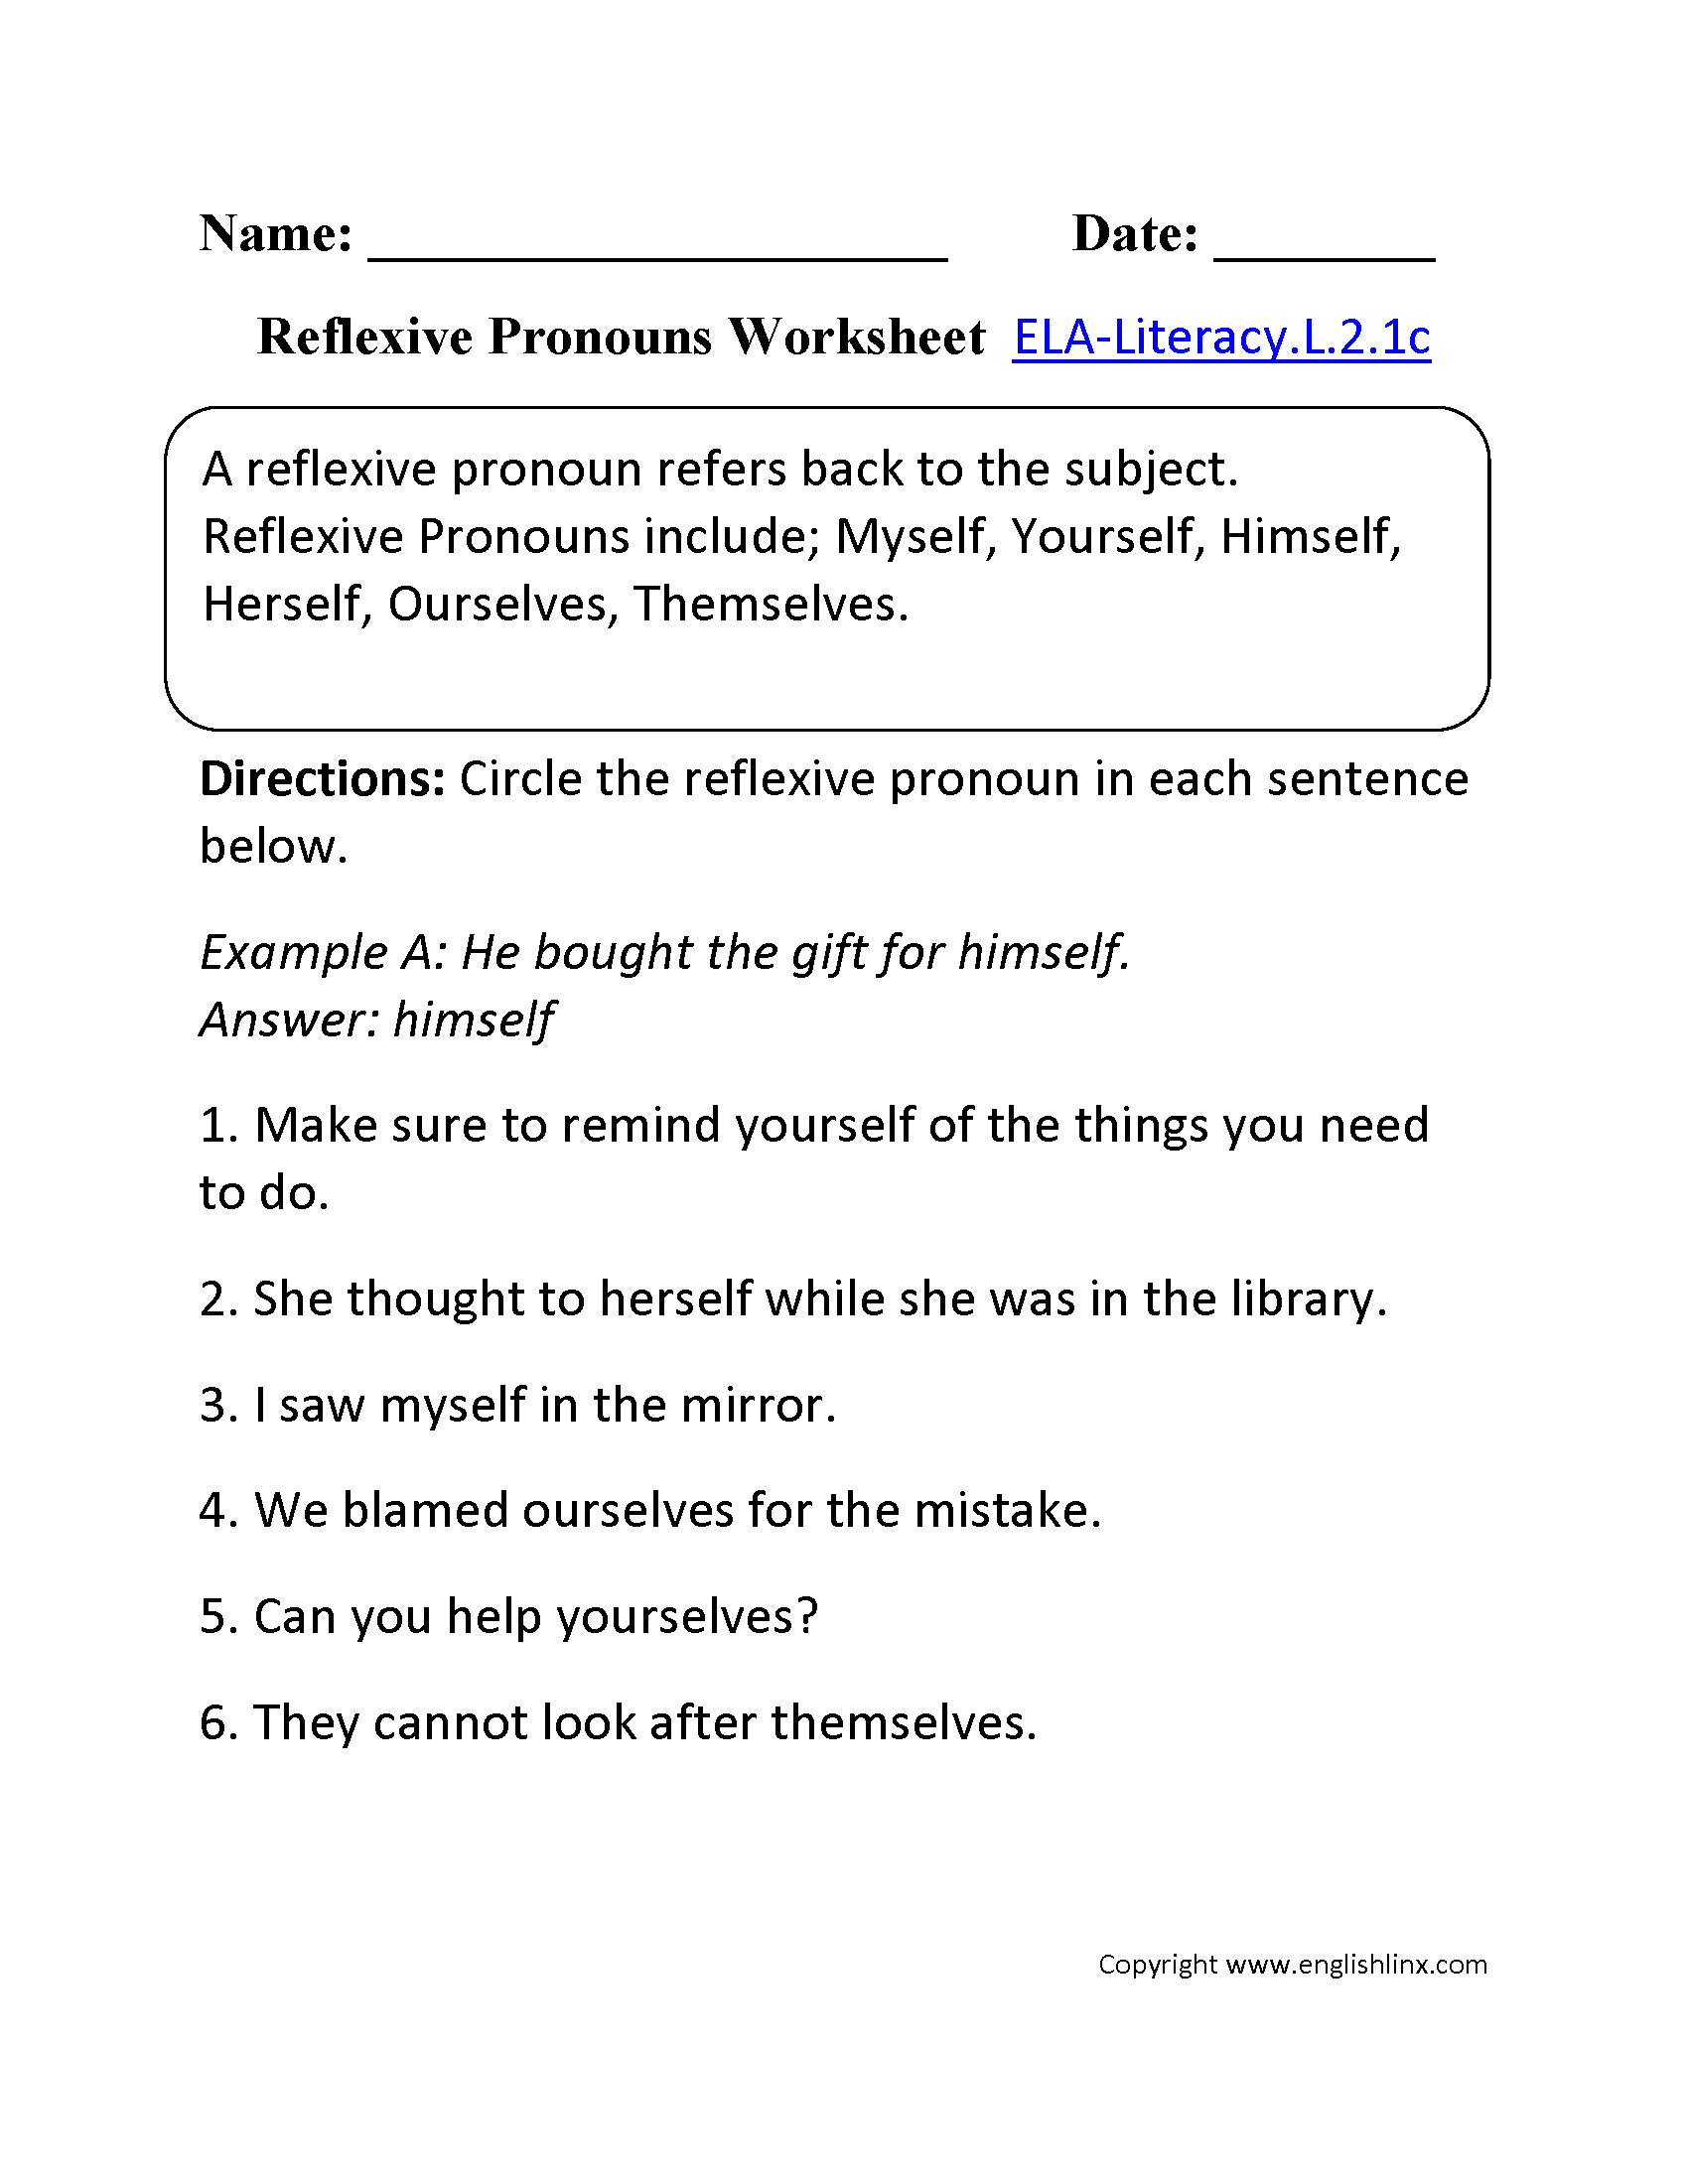 Worksheet English Language Worksheets For Grade 2 2nd grade common core language worksheets reflexive pronouns worksheet 2 ela literacy l 1c worksheet